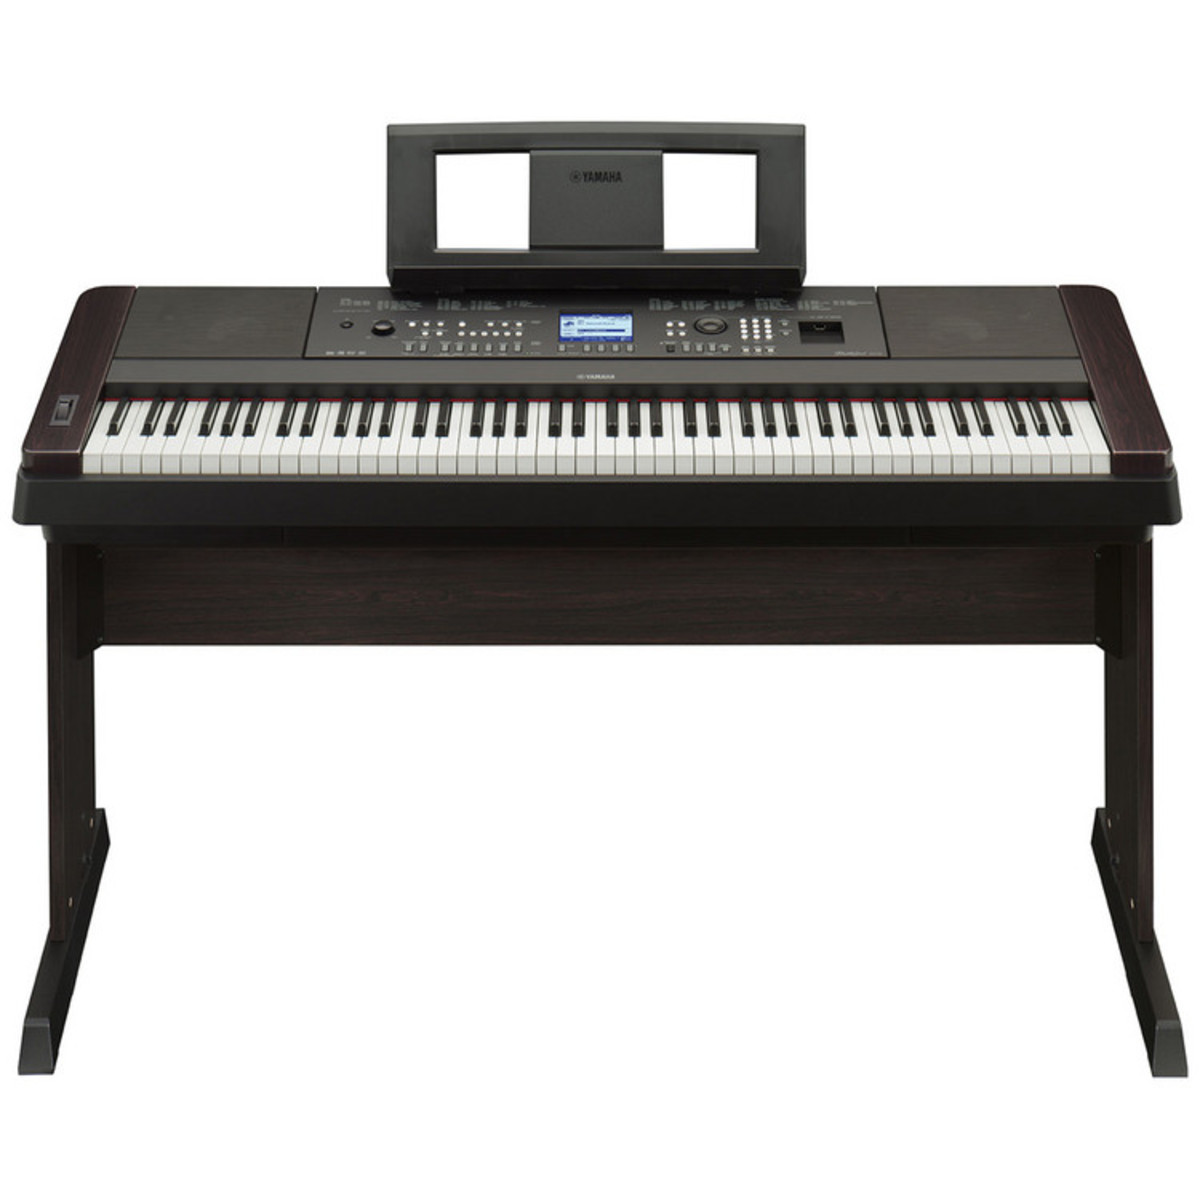 Yamaha portable grand dgx650 digital piano black at for Yamaha piano keyboard models